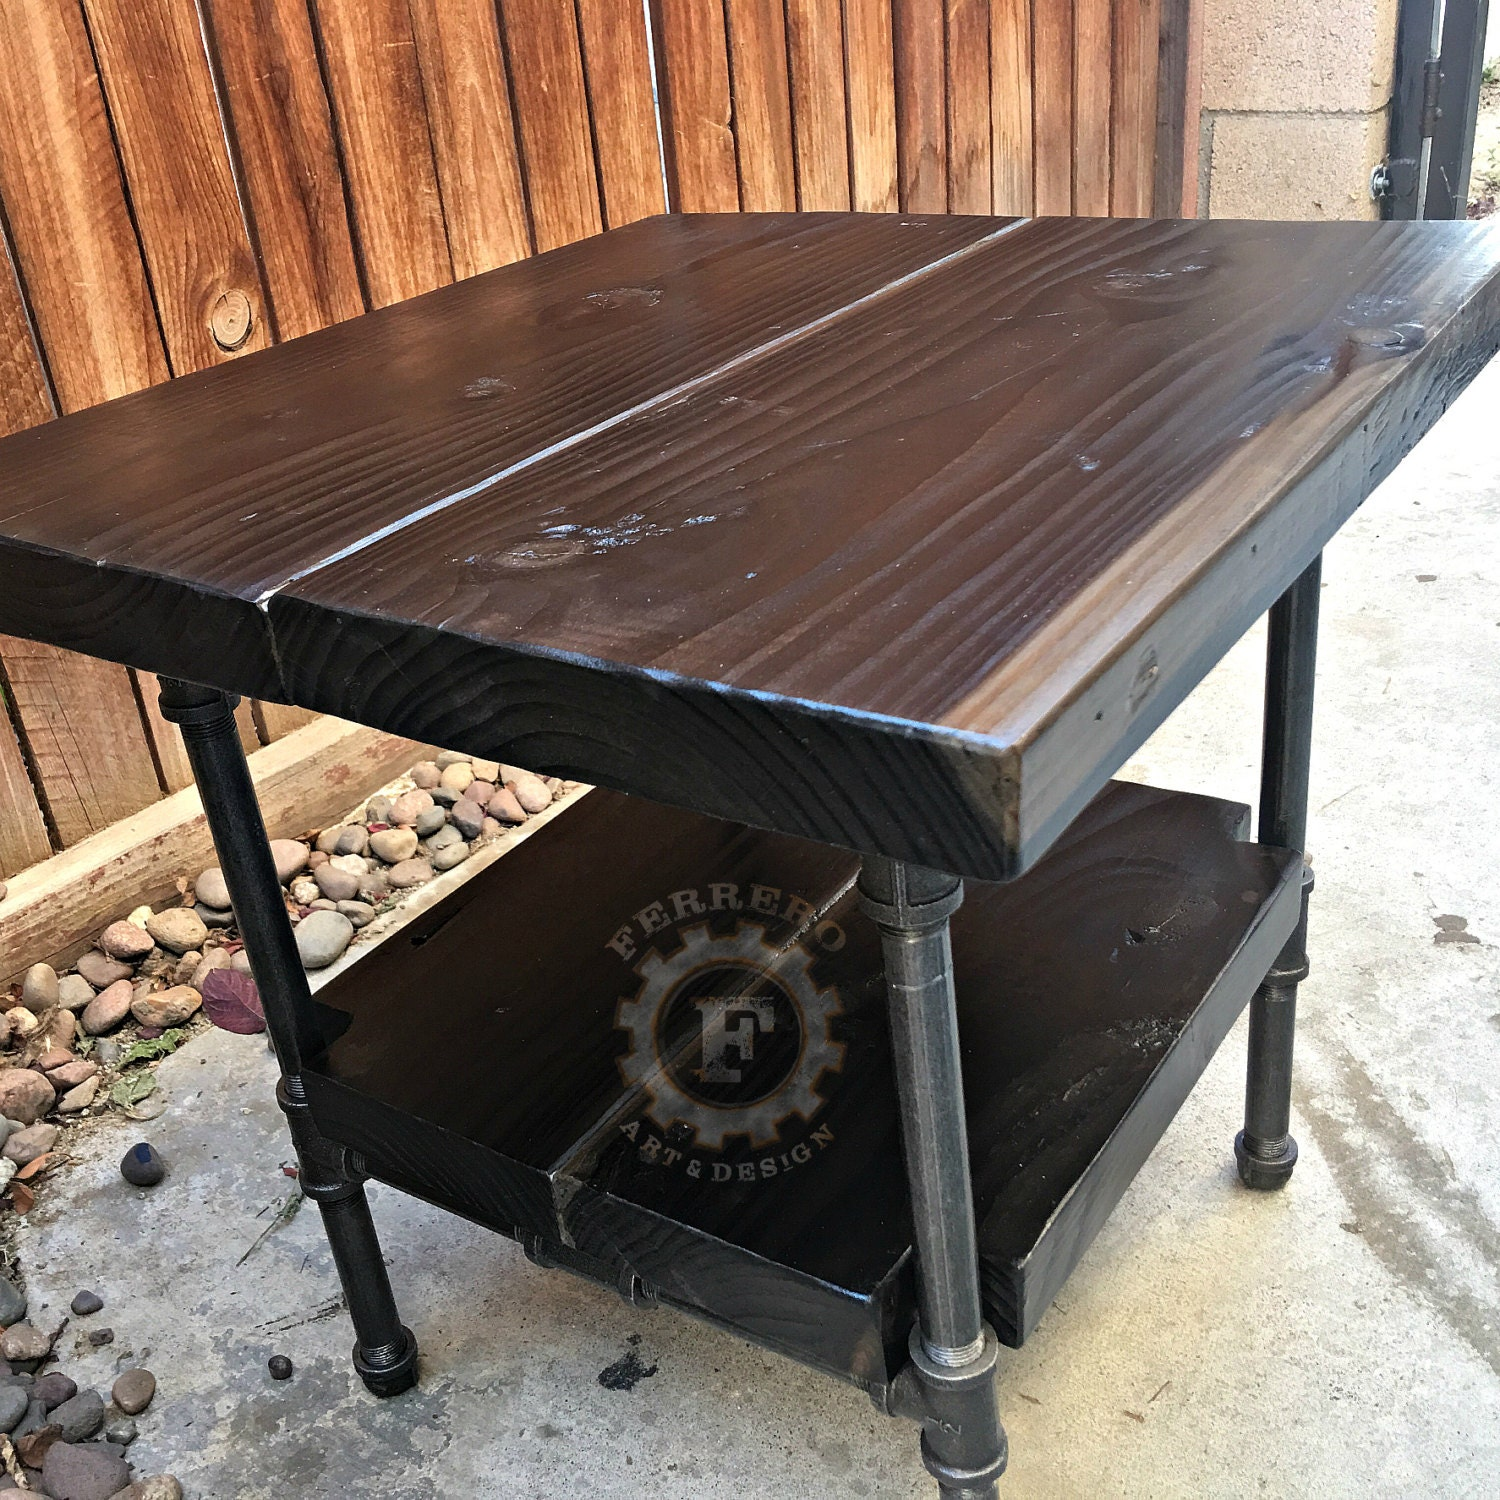 This Sleek And Rustic Industrial Table Would Look Great In: Steampunk Table Industrial Nightstand Industrial Decor